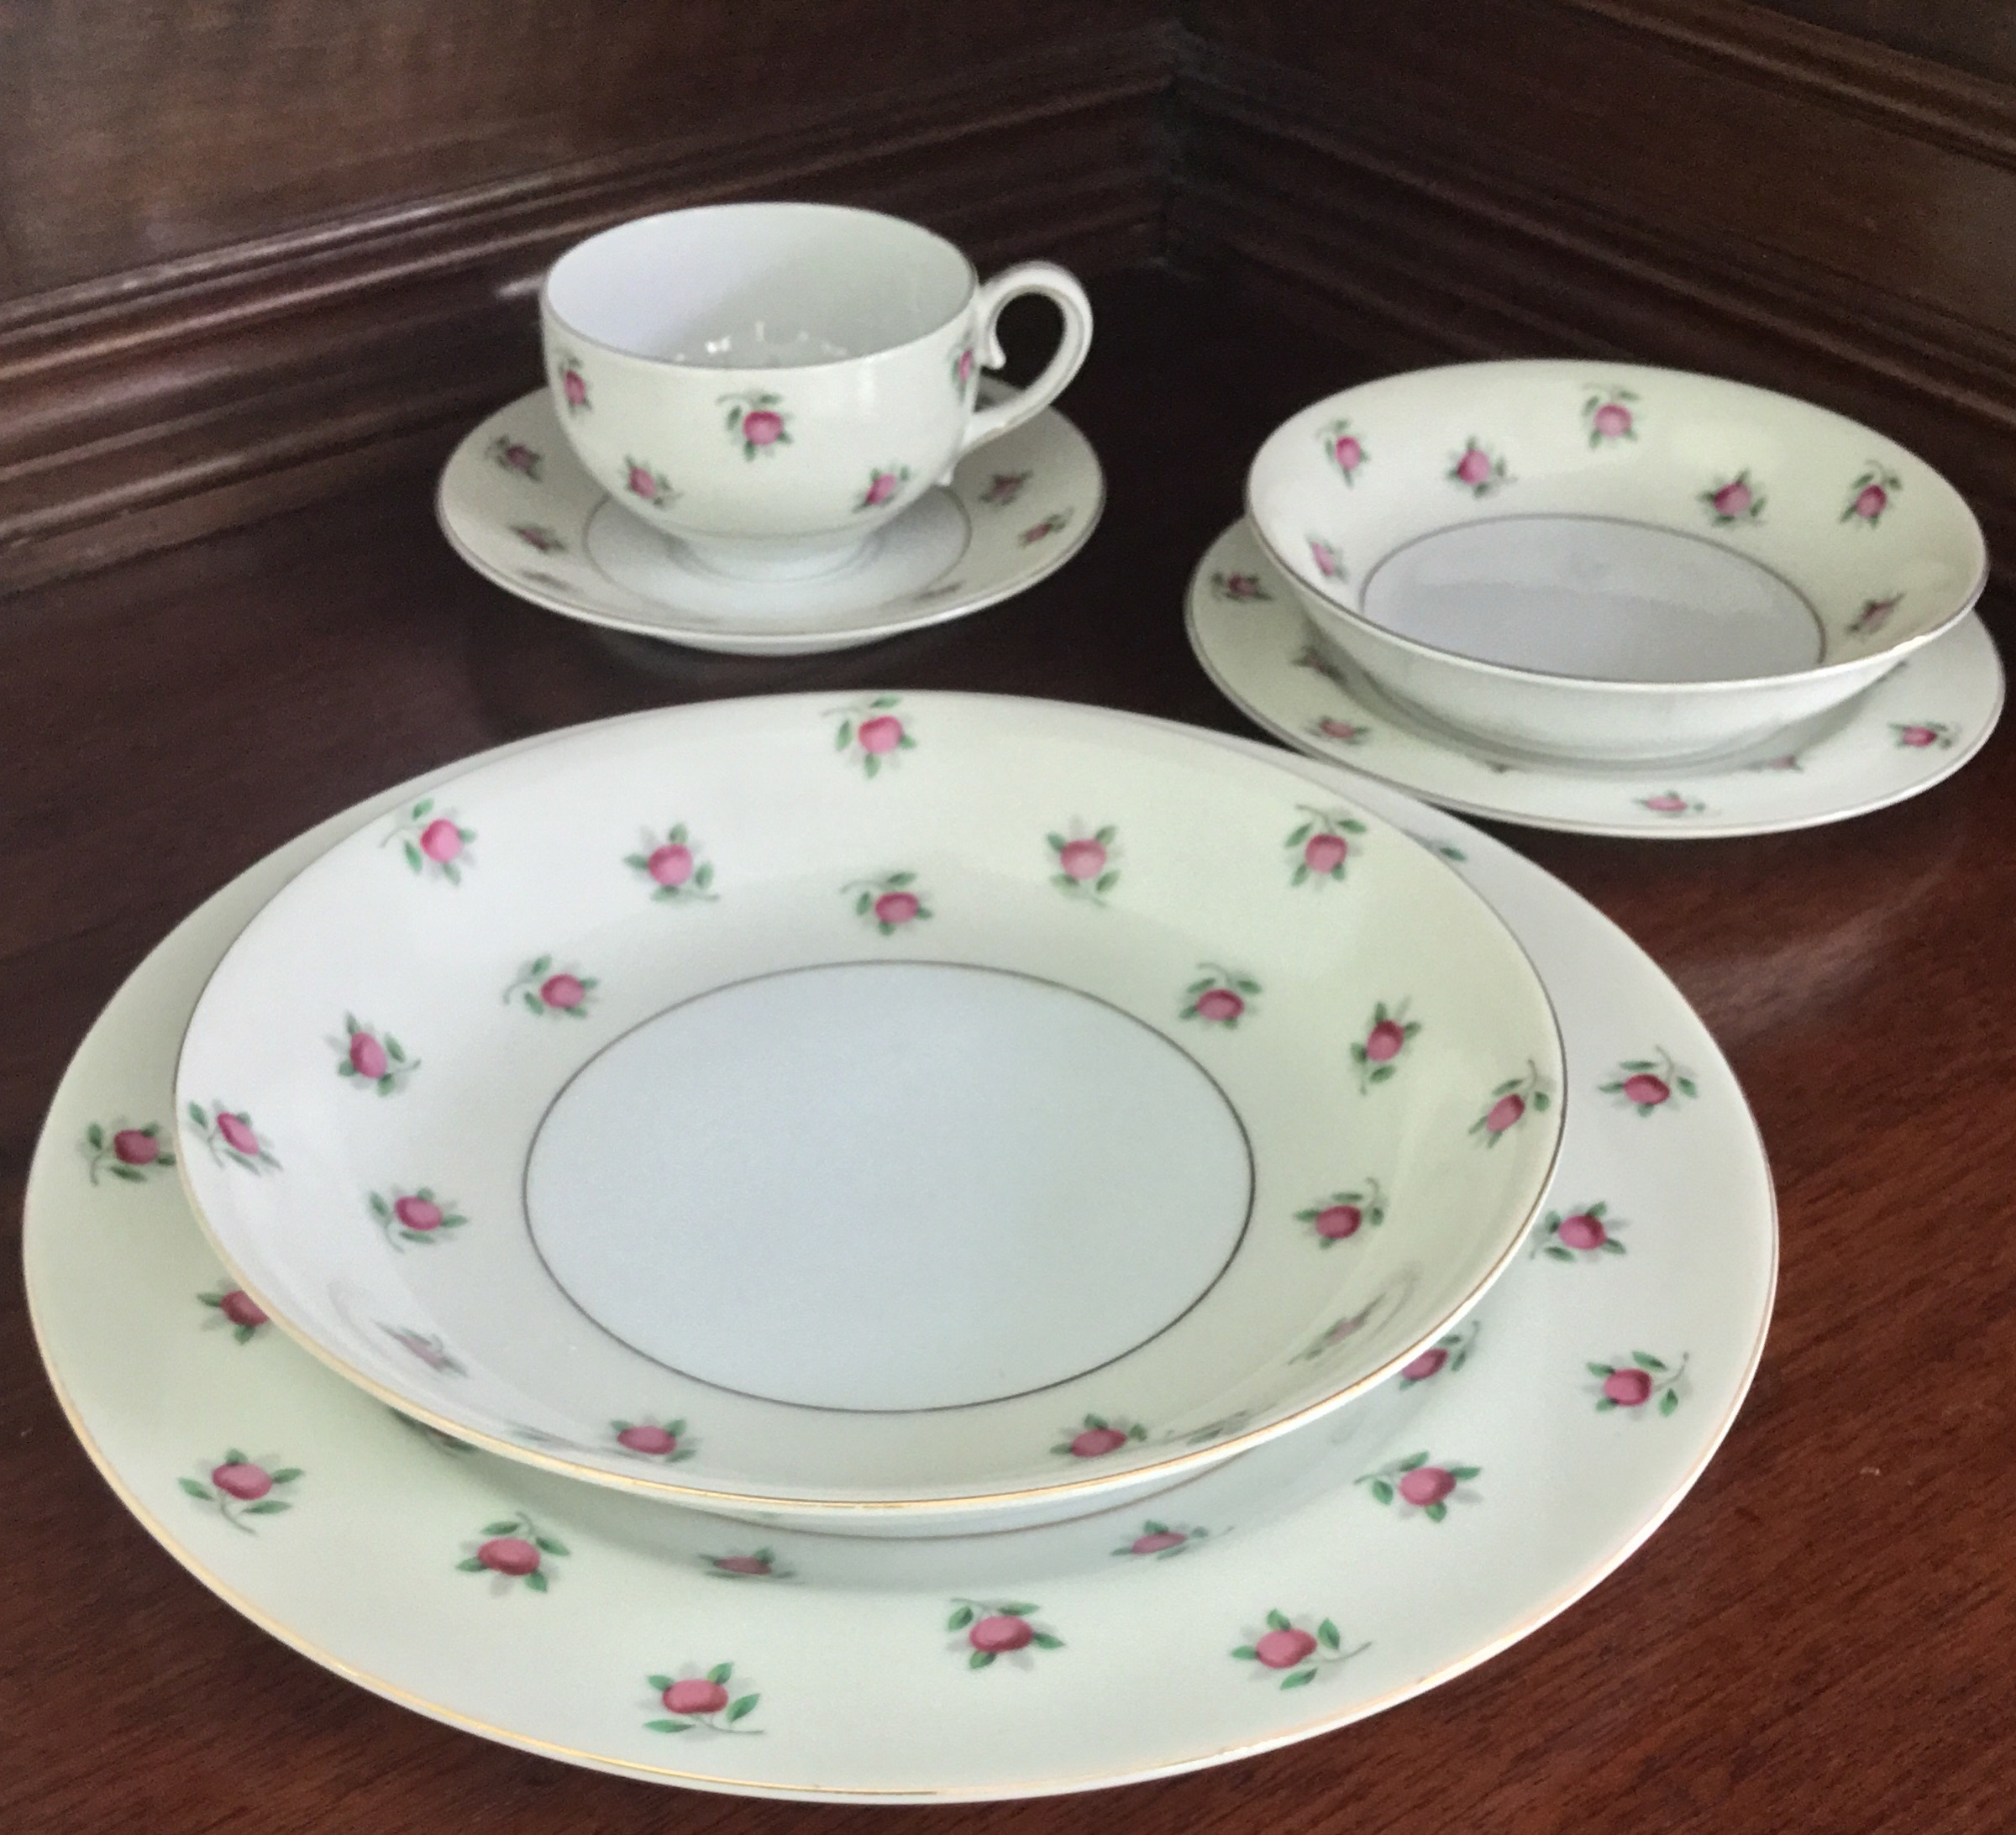 Ucagco China 6-Piece Place Setting